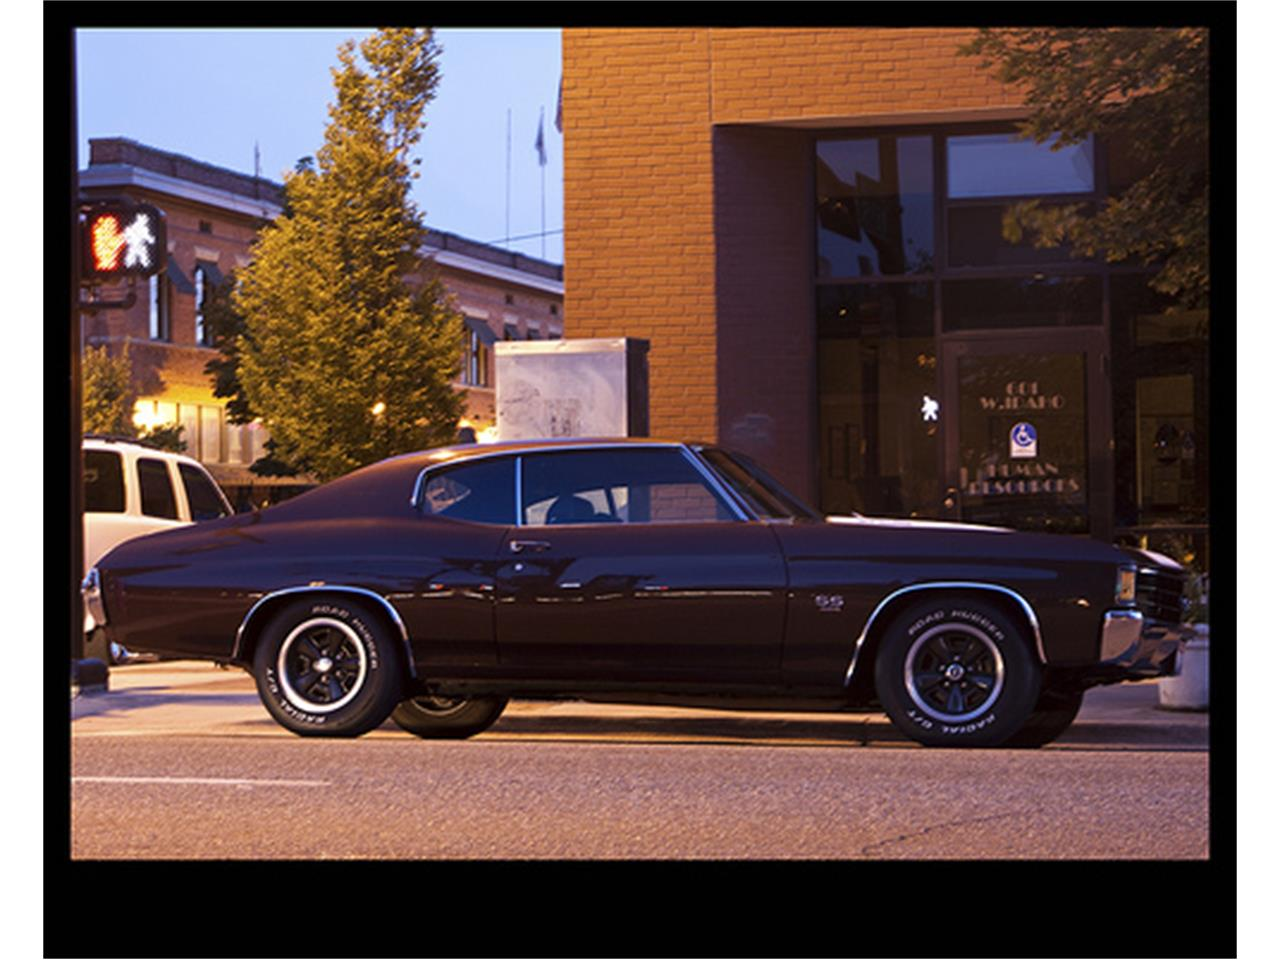 Large Picture of '72 Chevrolet Chevelle located in Idaho - $52,700.00 - JLY8